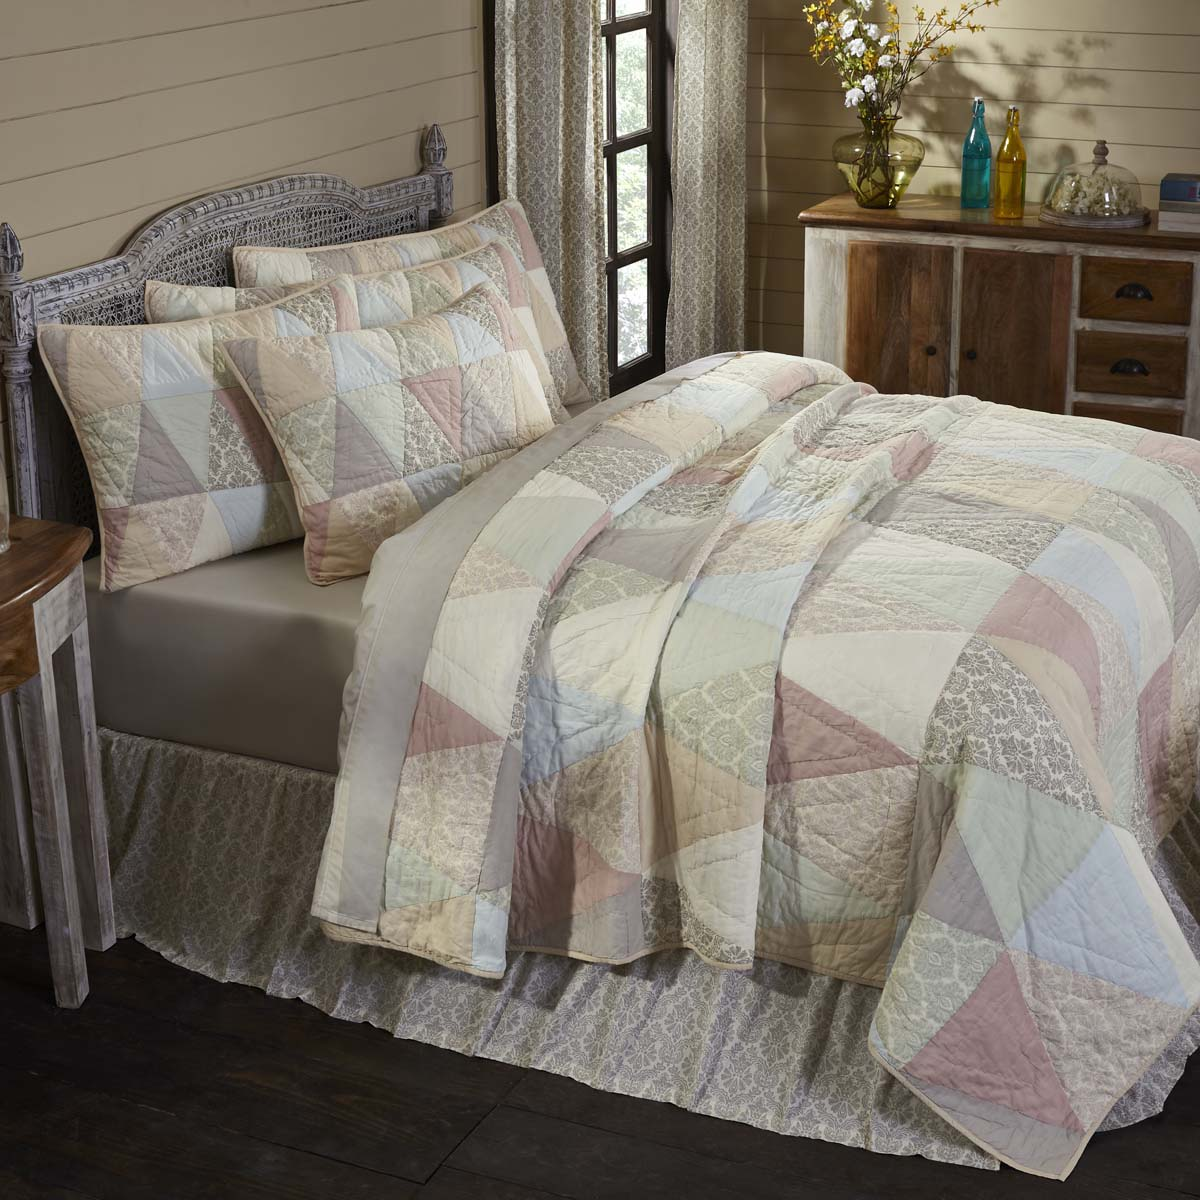 Ava King Quilt 105Wx95L